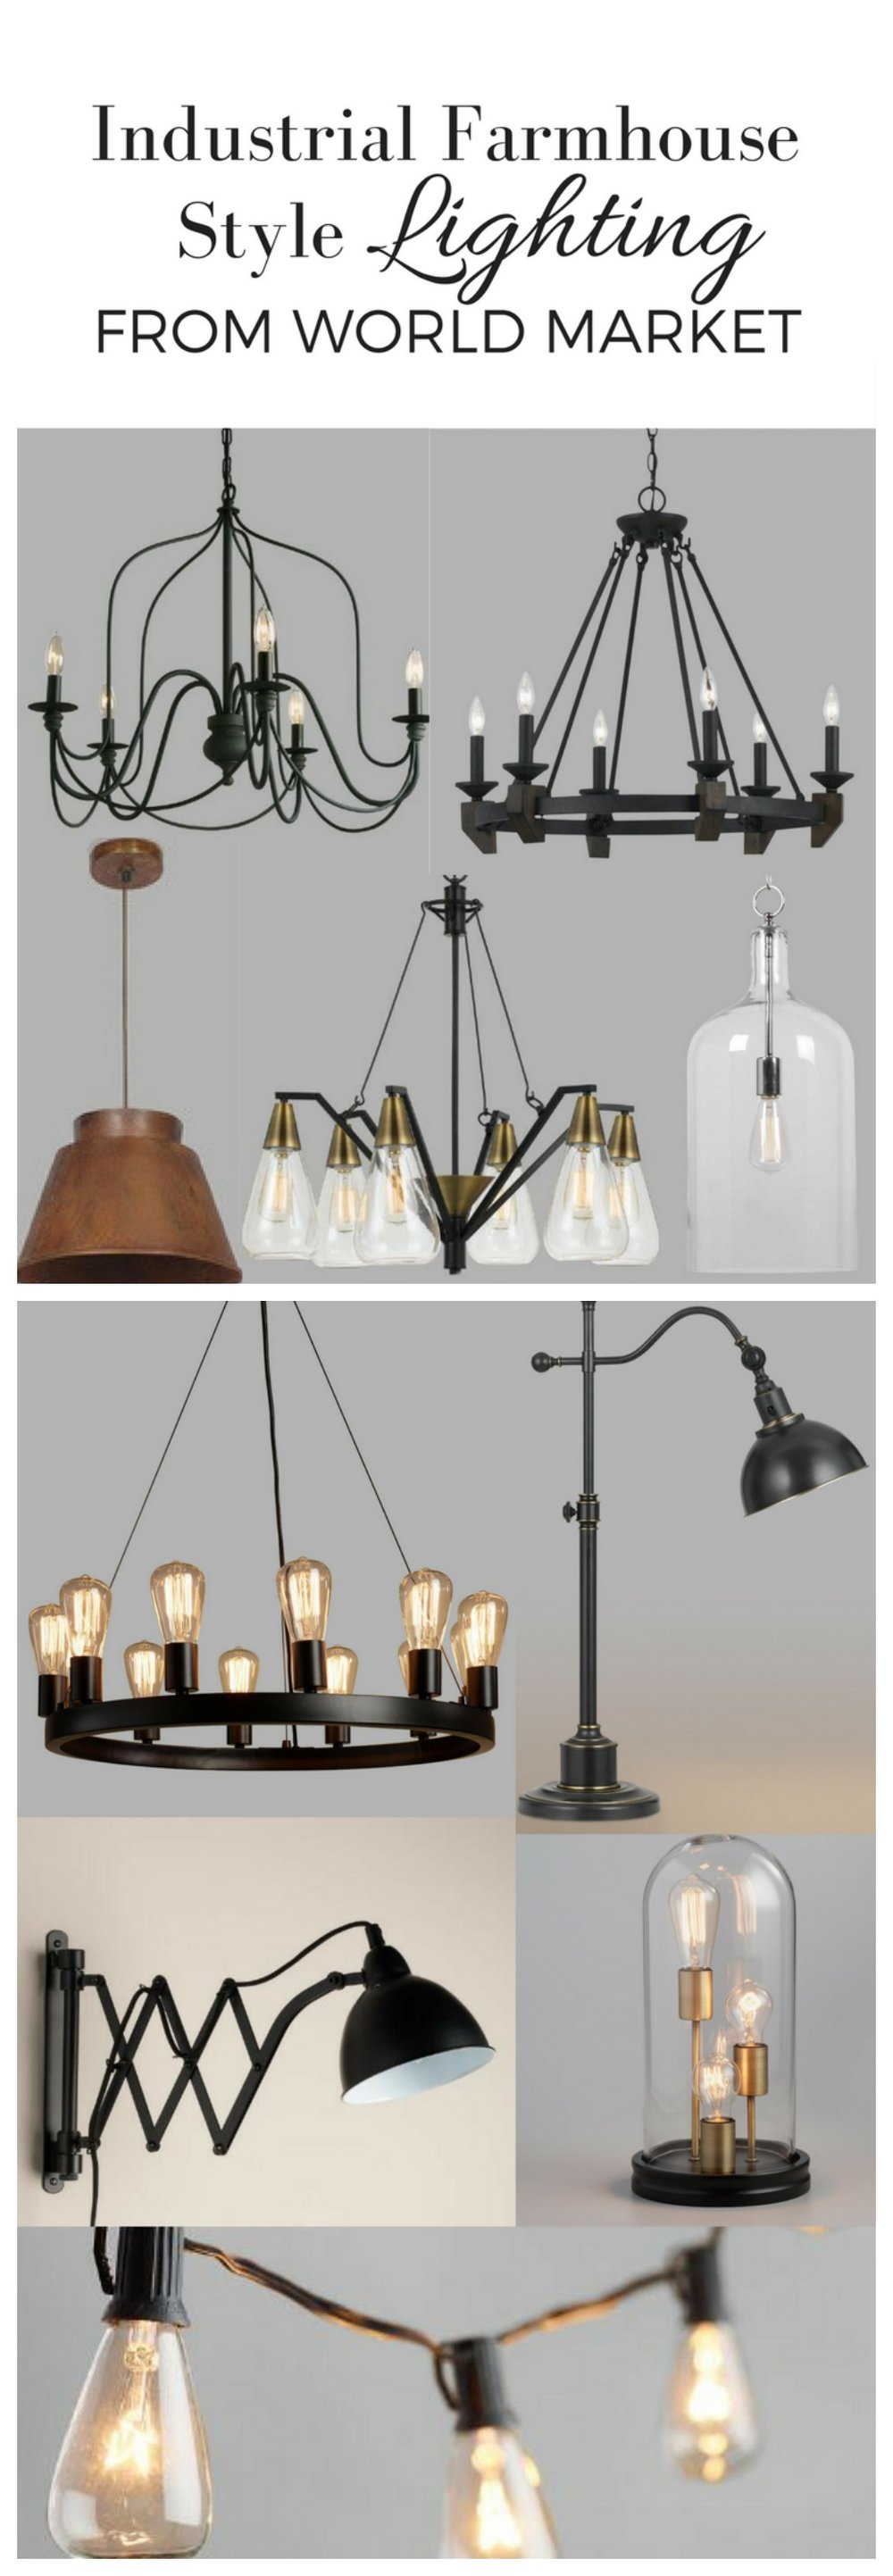 industrial farmhouse style lighting from world market